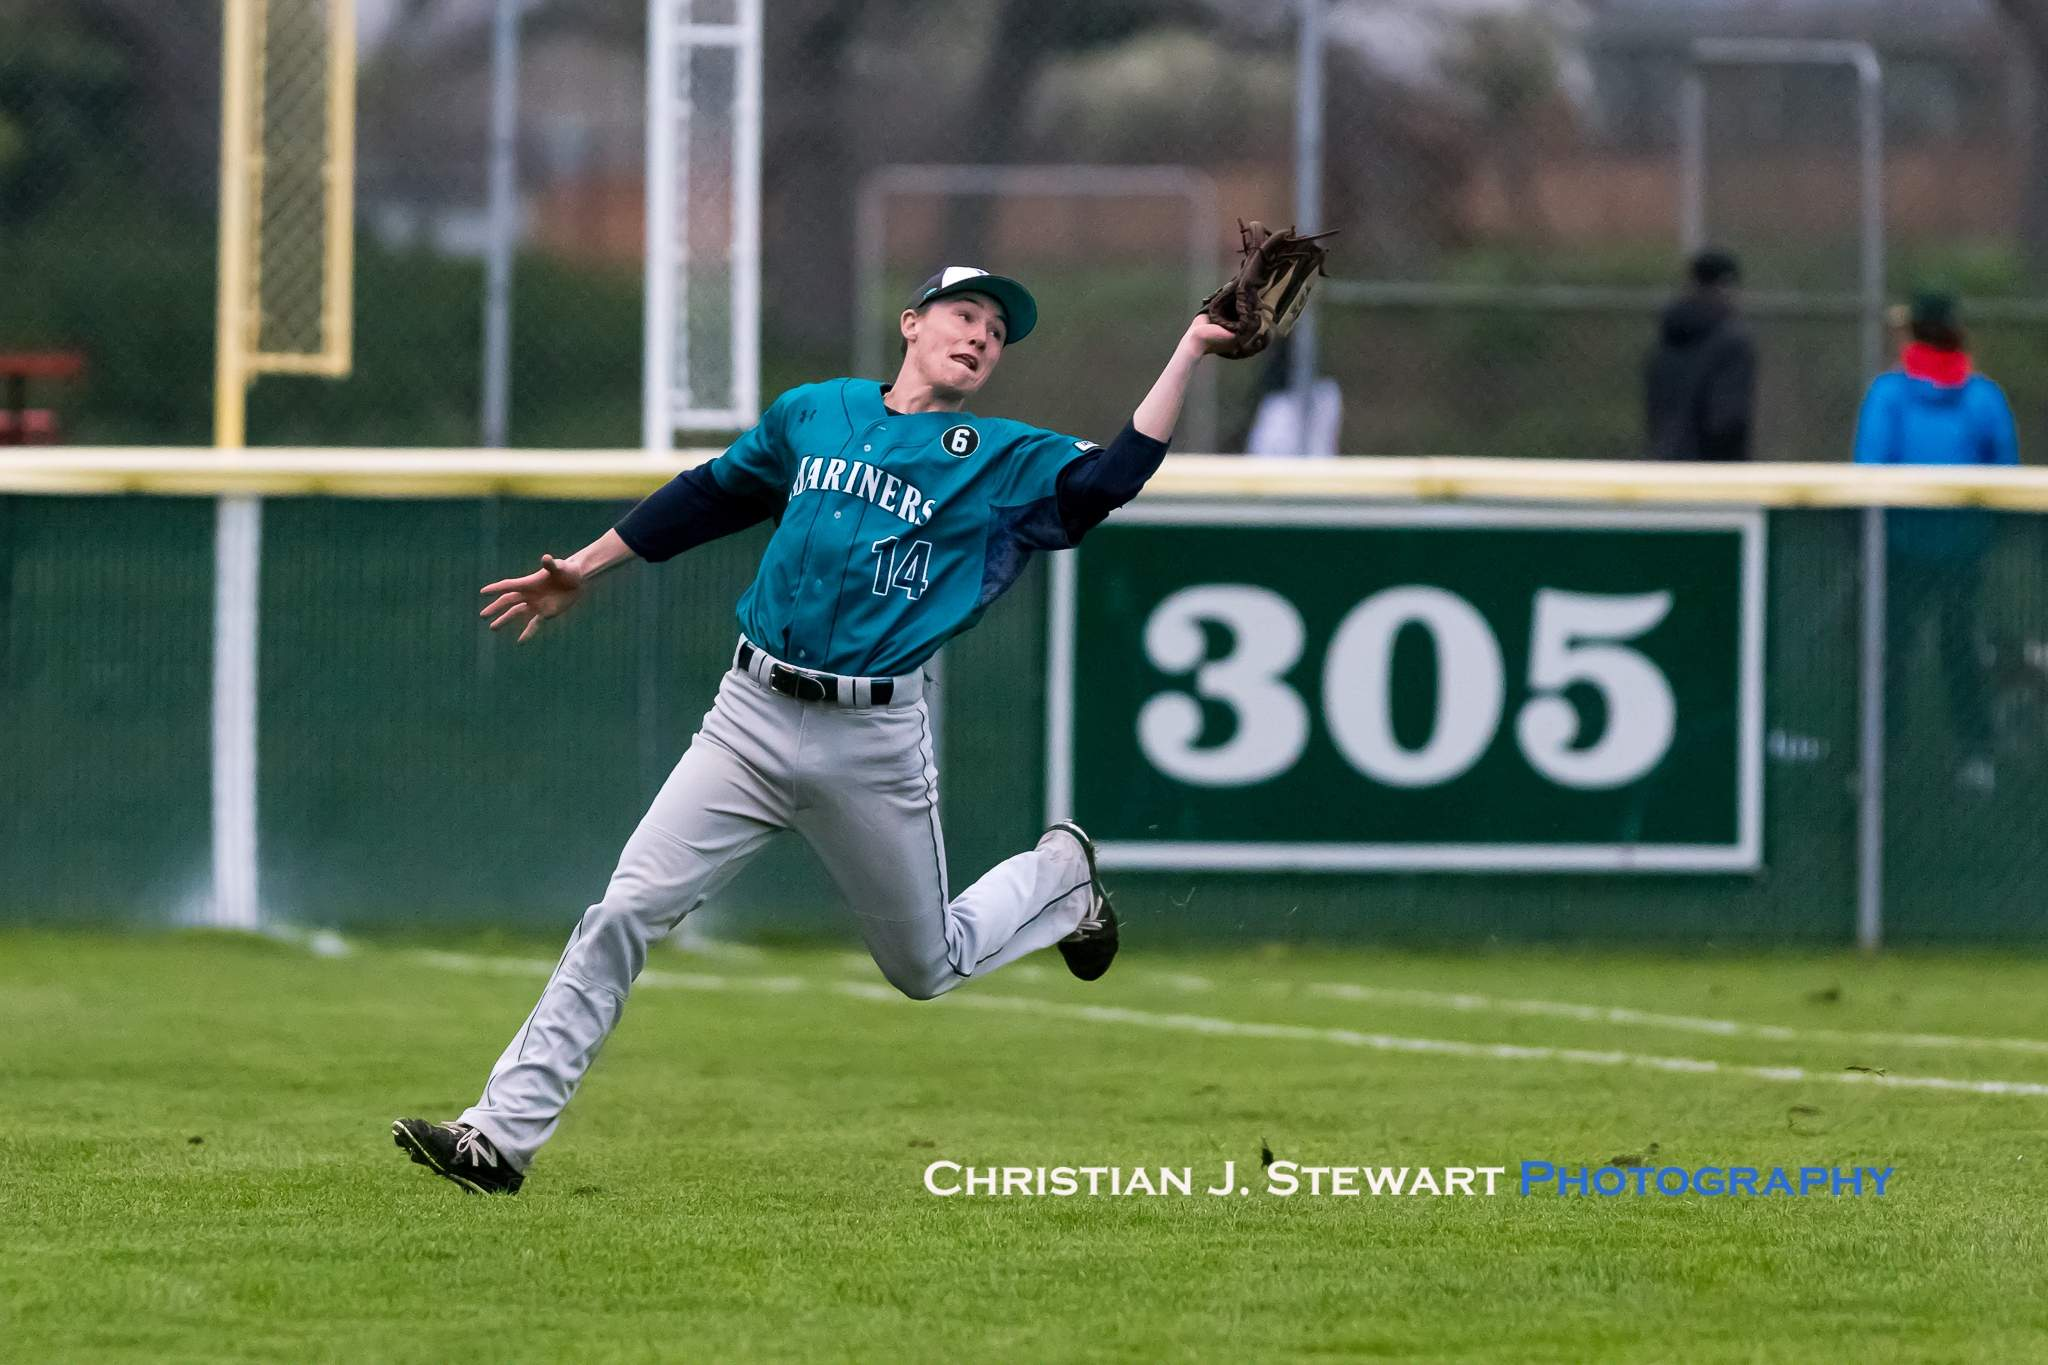 Victoria Mariner left fielder Justin Giles (14) makes a nice running catch against the Eagles on Tuesday evening (Photo: Christian J. Stewart)